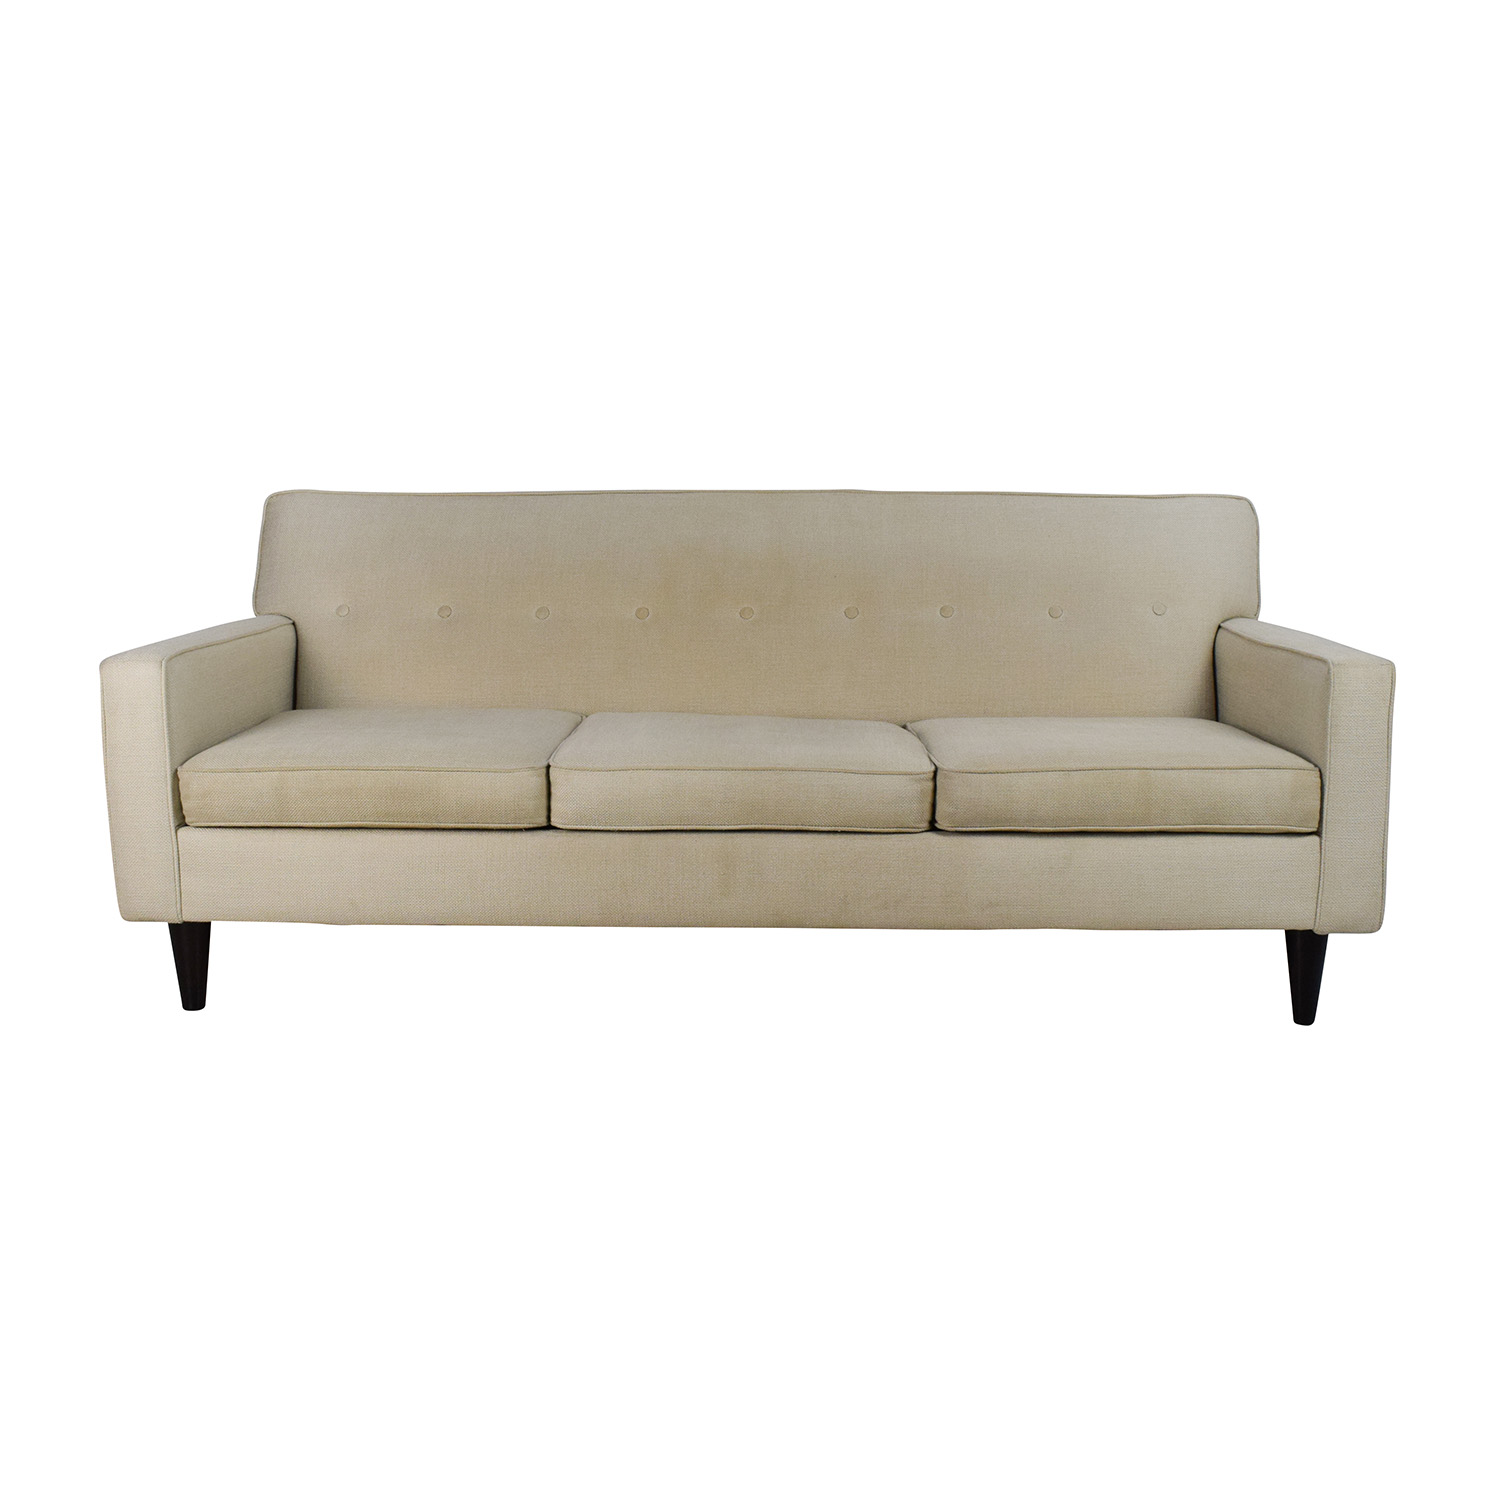 41% OFF Inmod Inmod Bjorg Tufted Light Grey Sofabed Sofas